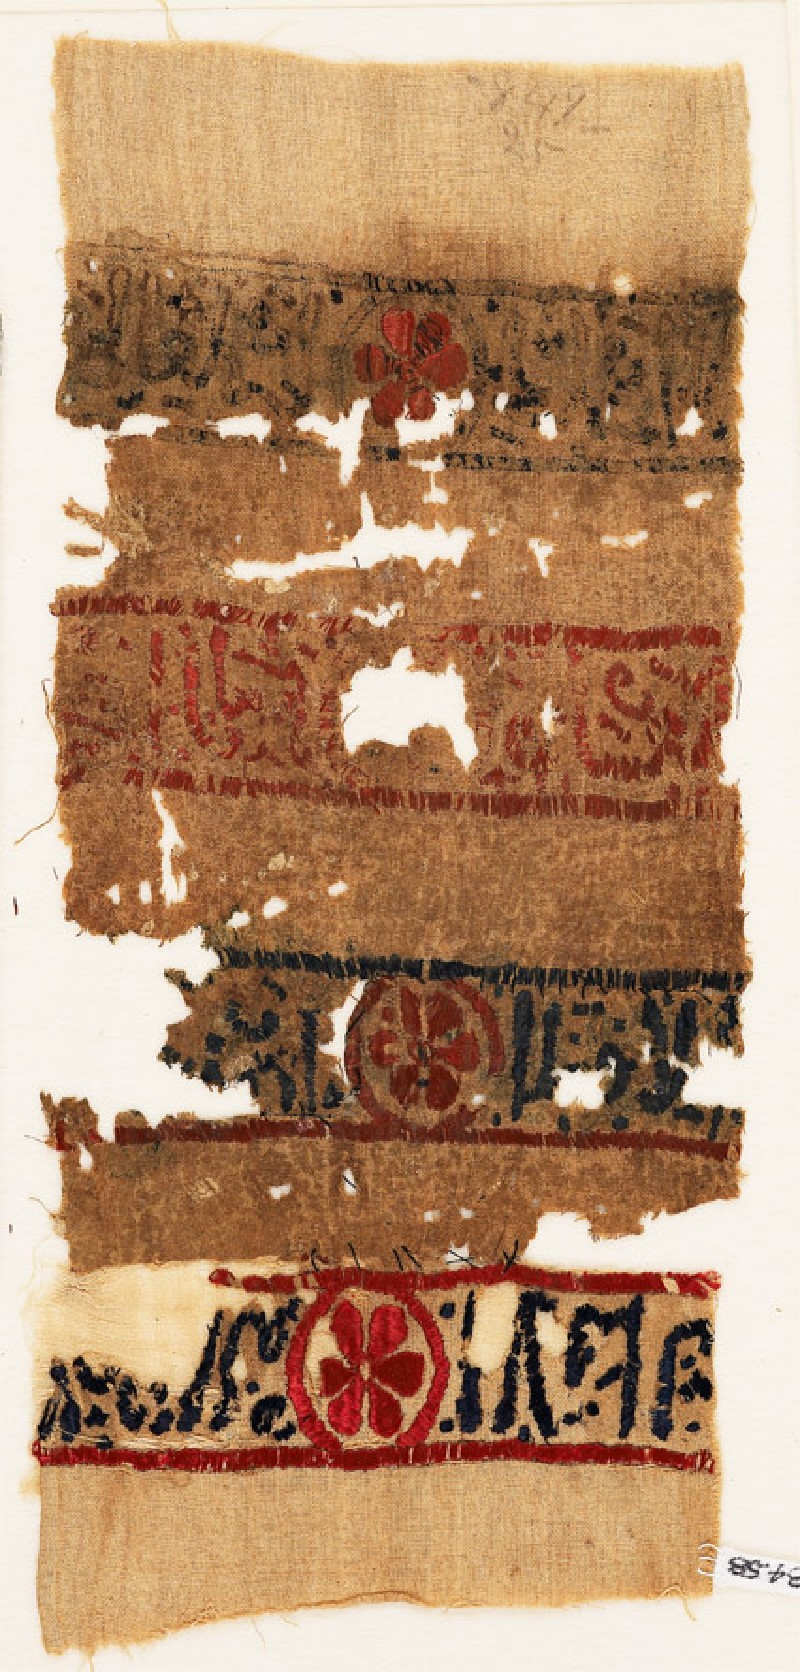 Textile fragment with bands of inscription and blazons